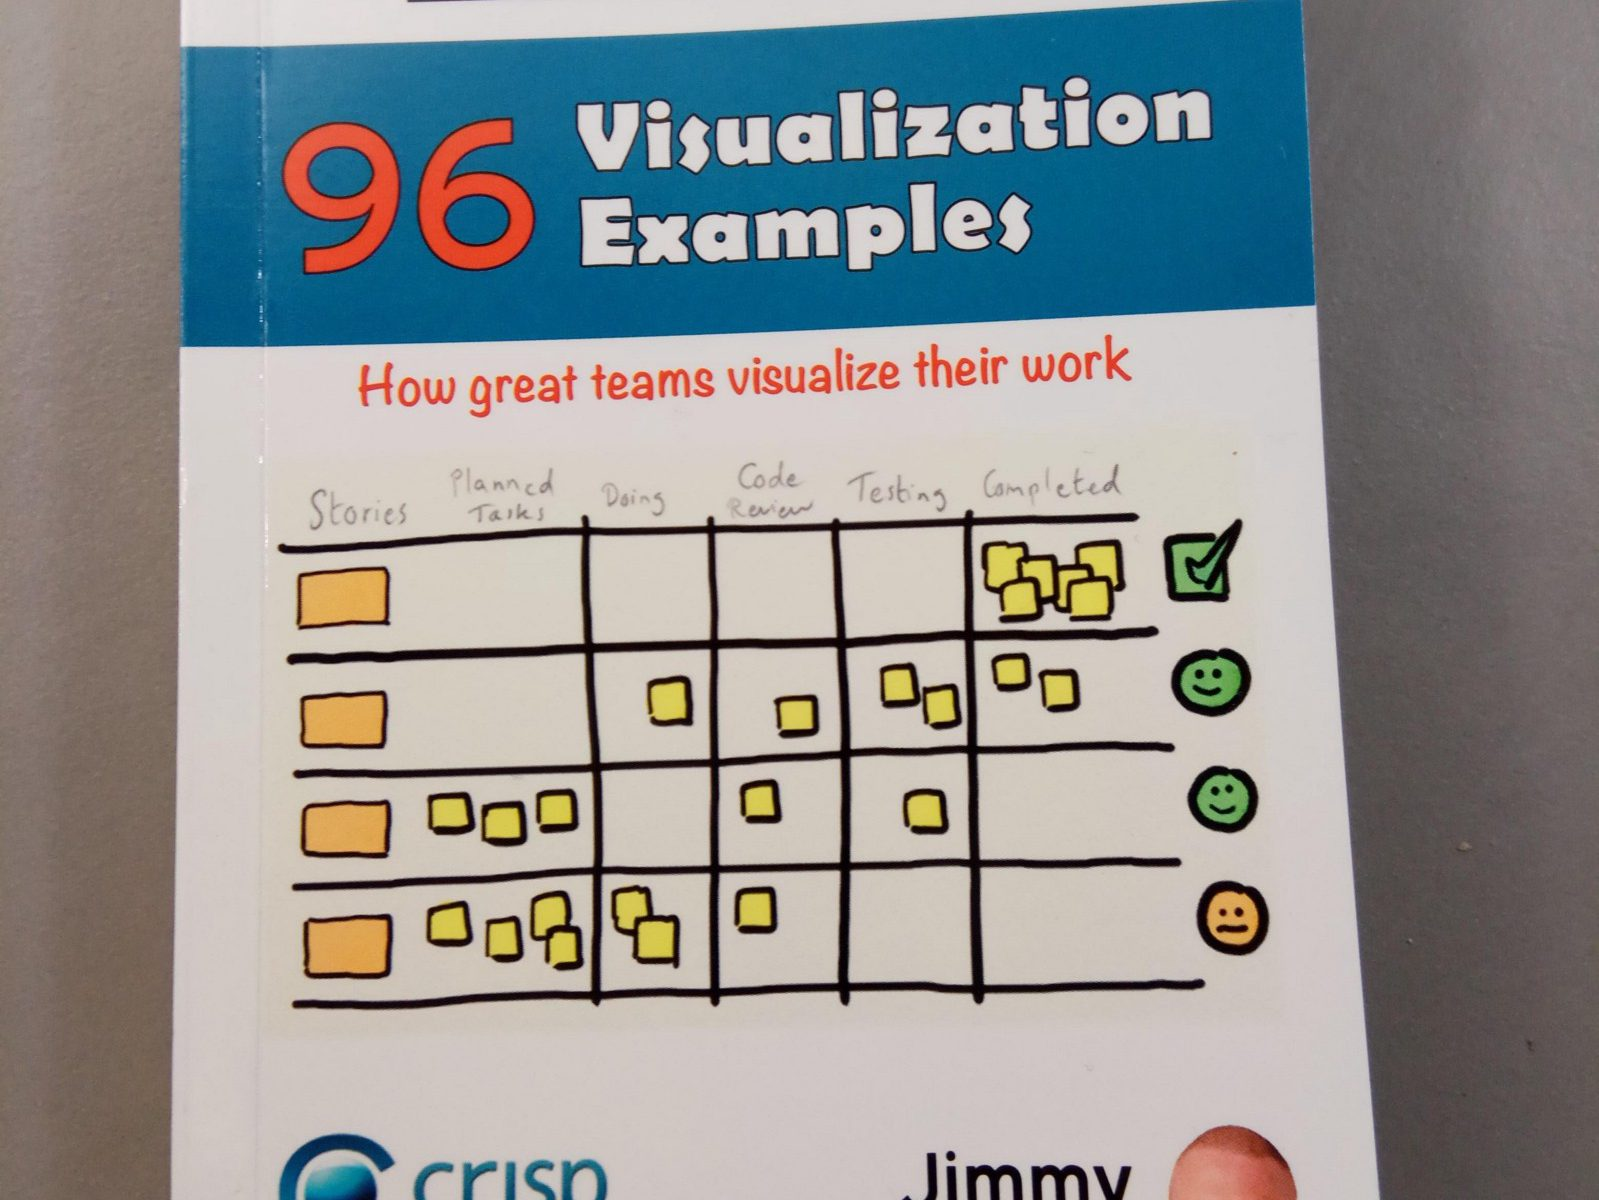 96 Visualization Examples